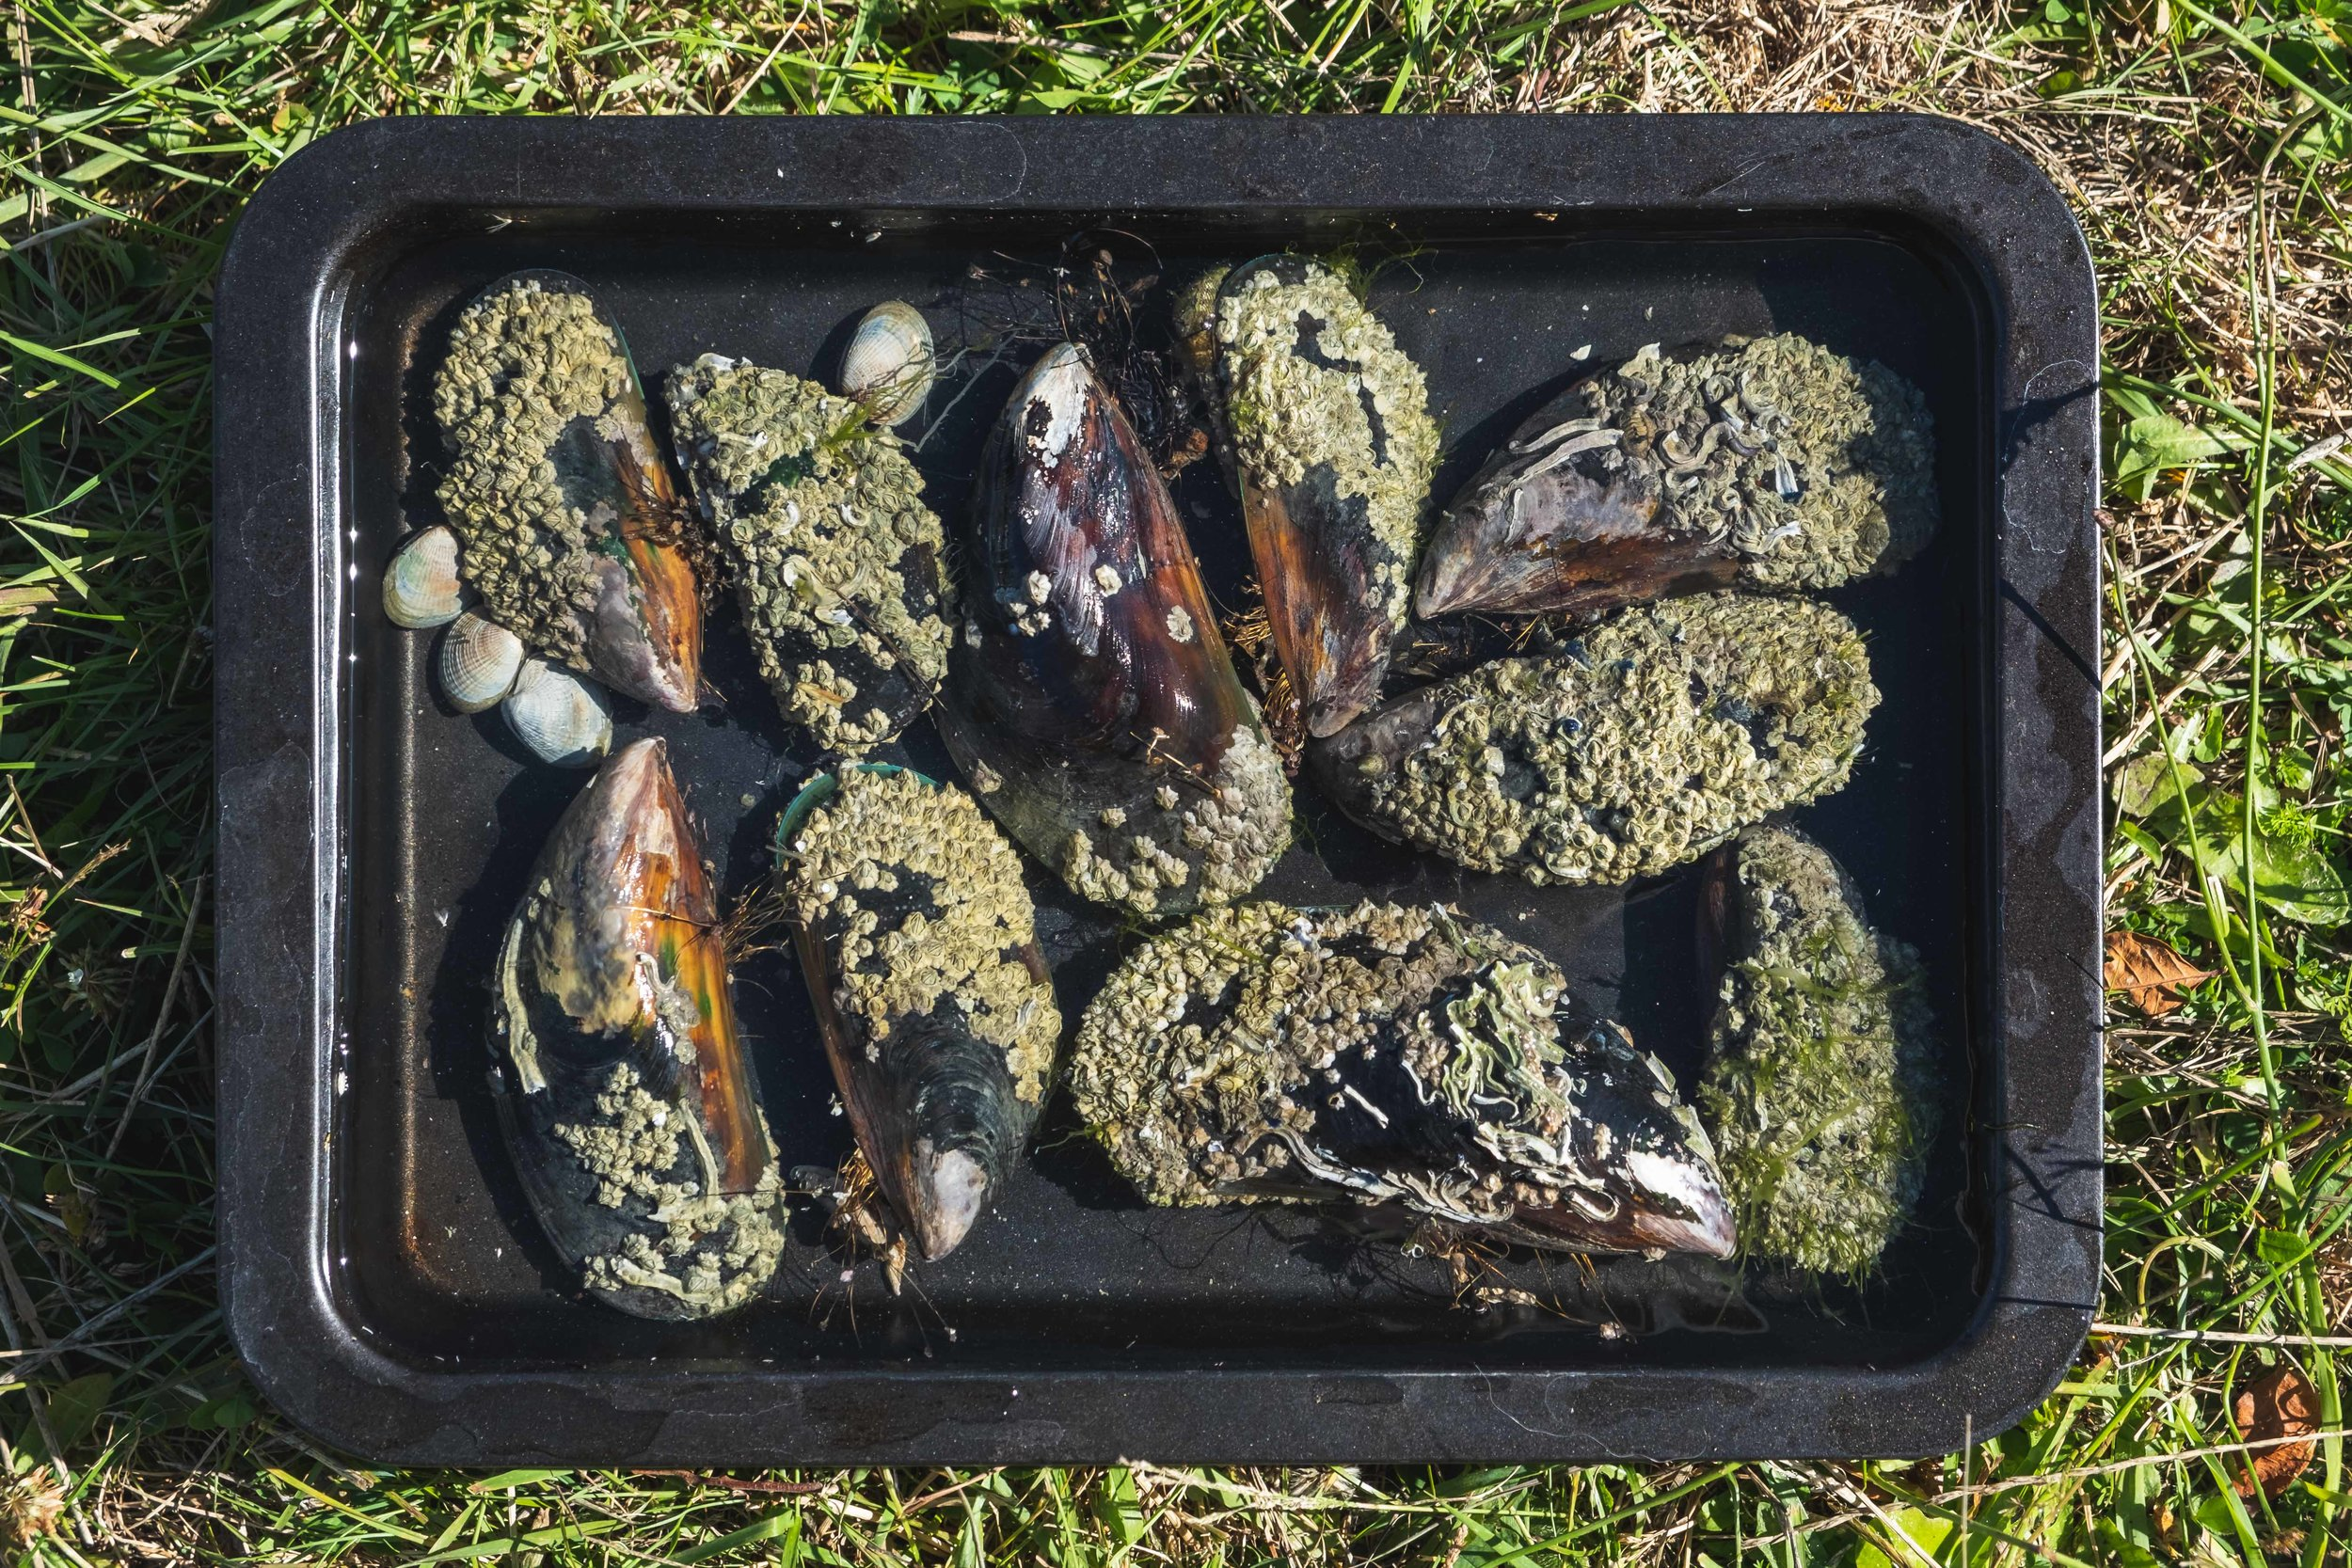 HUGE mussels we painfully found! This is a 9x13 pan for reference